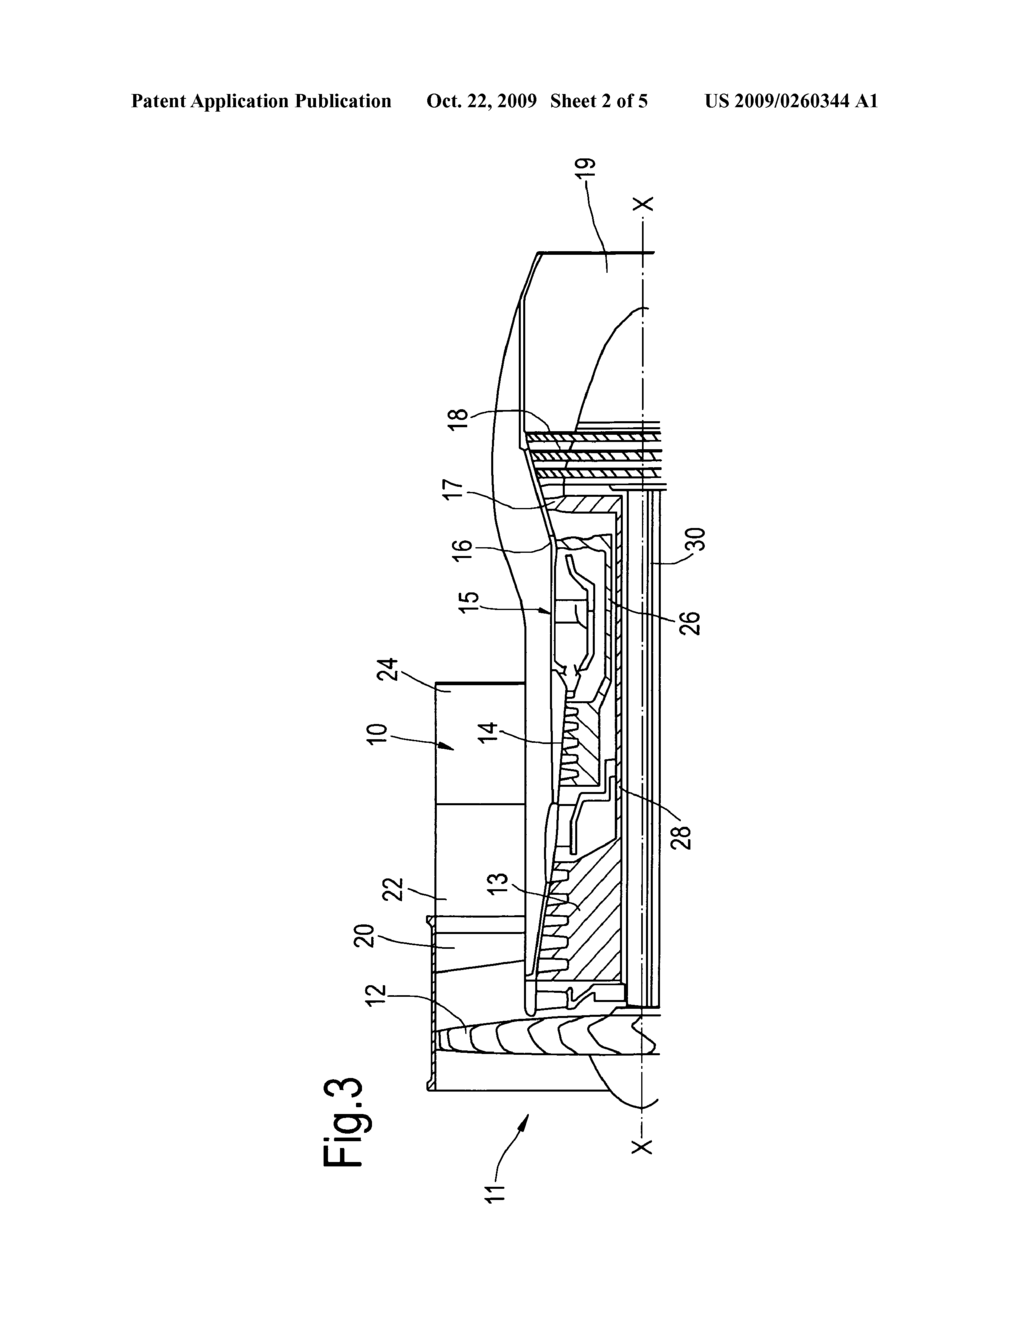 Rear Fan Case For A Gas Turbine Engine Diagram Schematic And Image 03